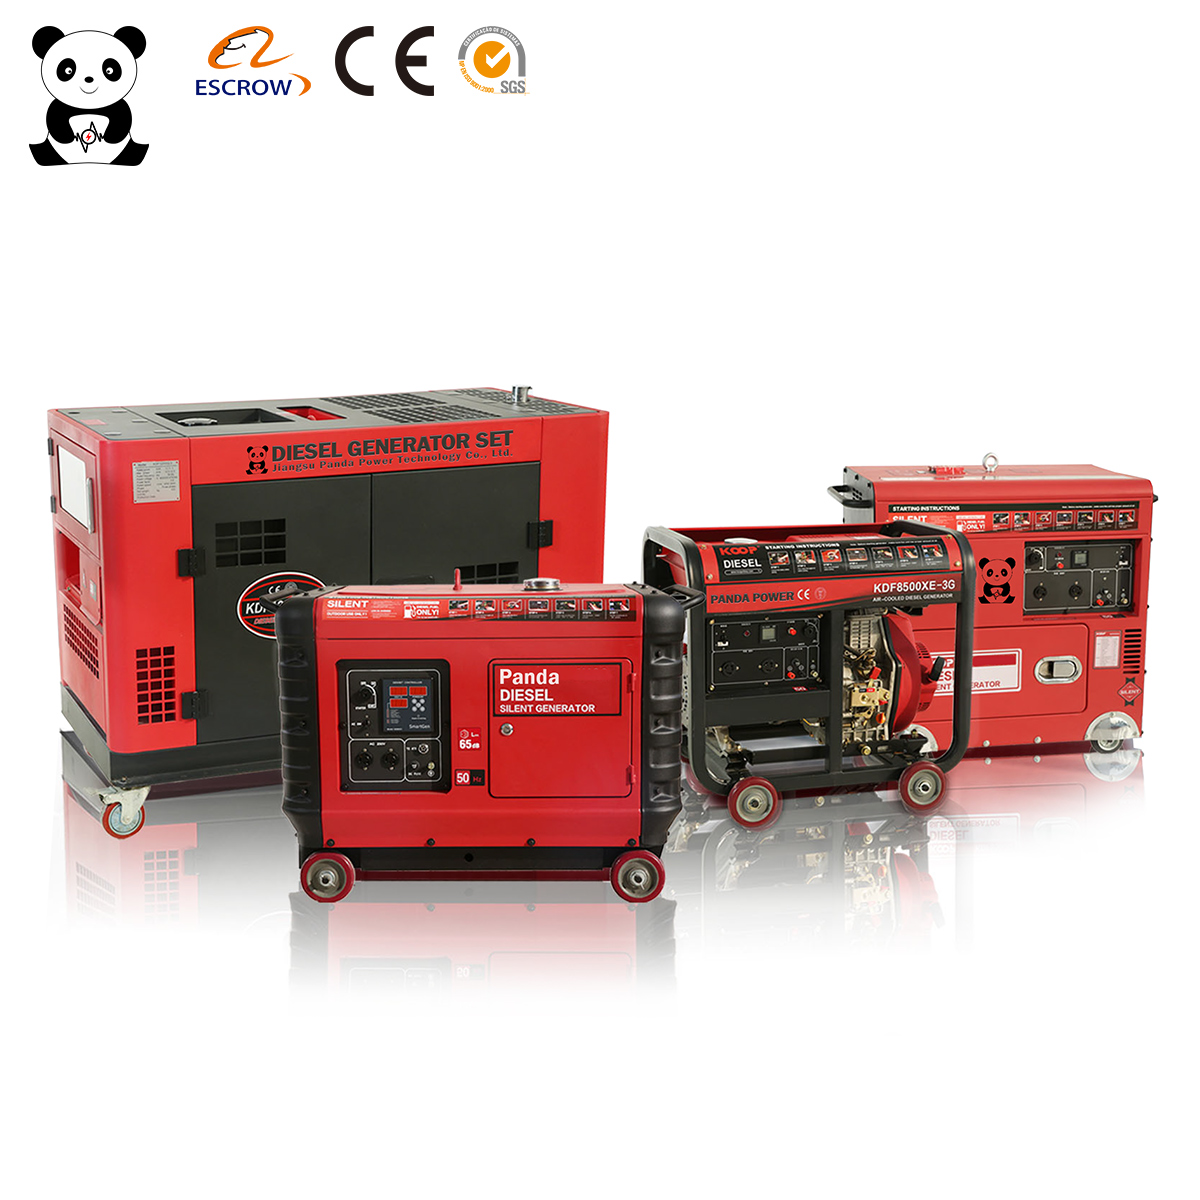 6Kva 15kva Small <strong>diesel</strong> generator set silent Super quiet Low noise Soundproof Air cooled made in china factory price